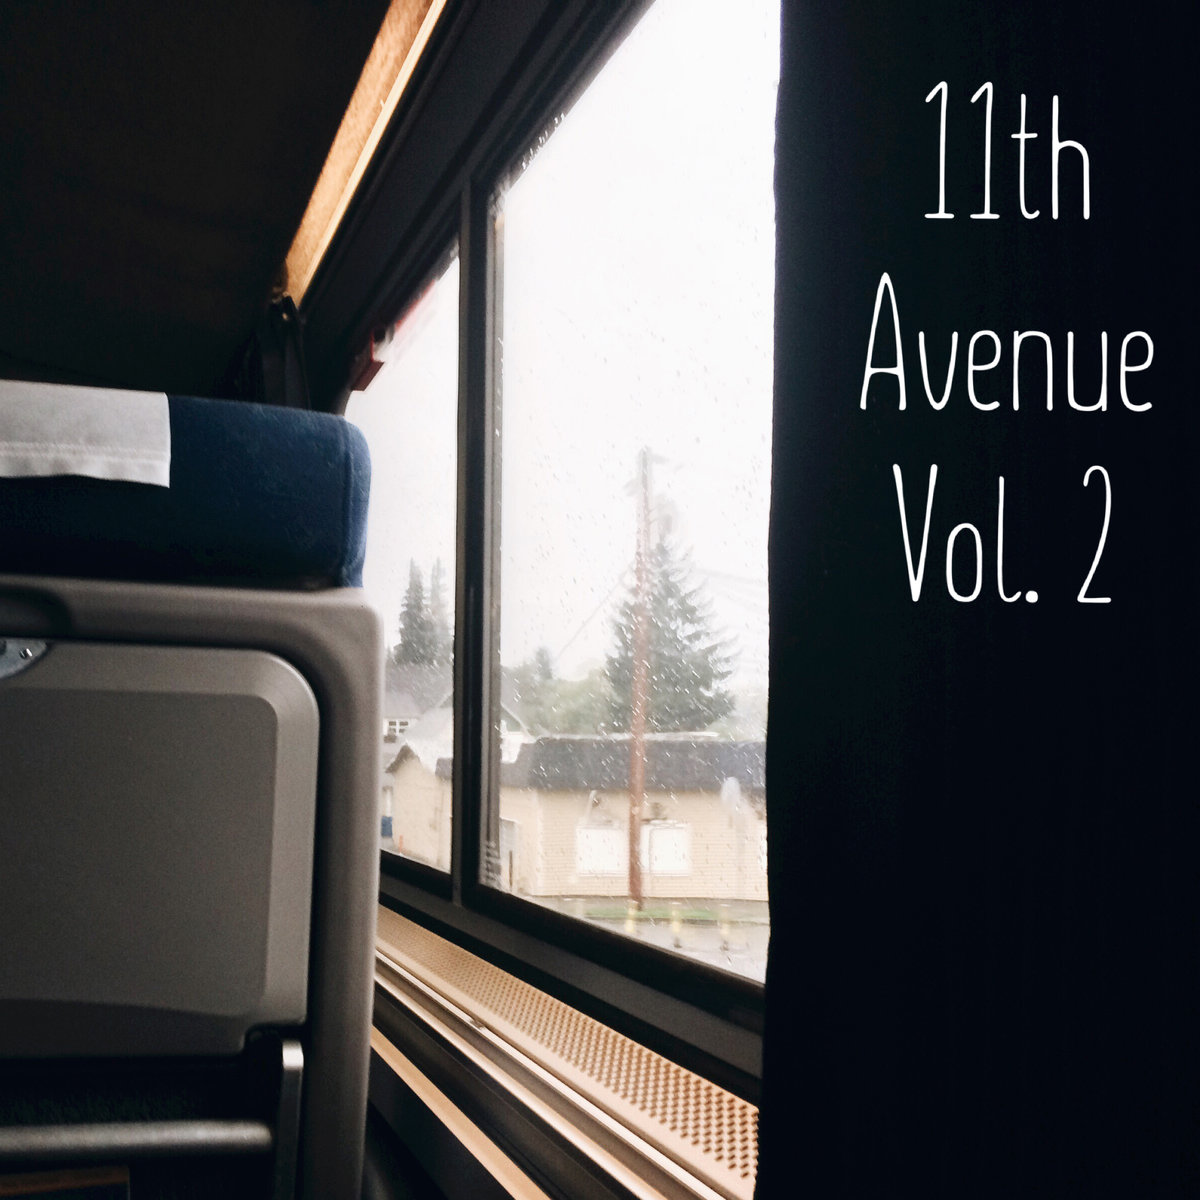 Jon Tran - Read My Lips @ '11th Avenue Vol. 2' album (11th ave records, 11thaverecords 11th avenue)